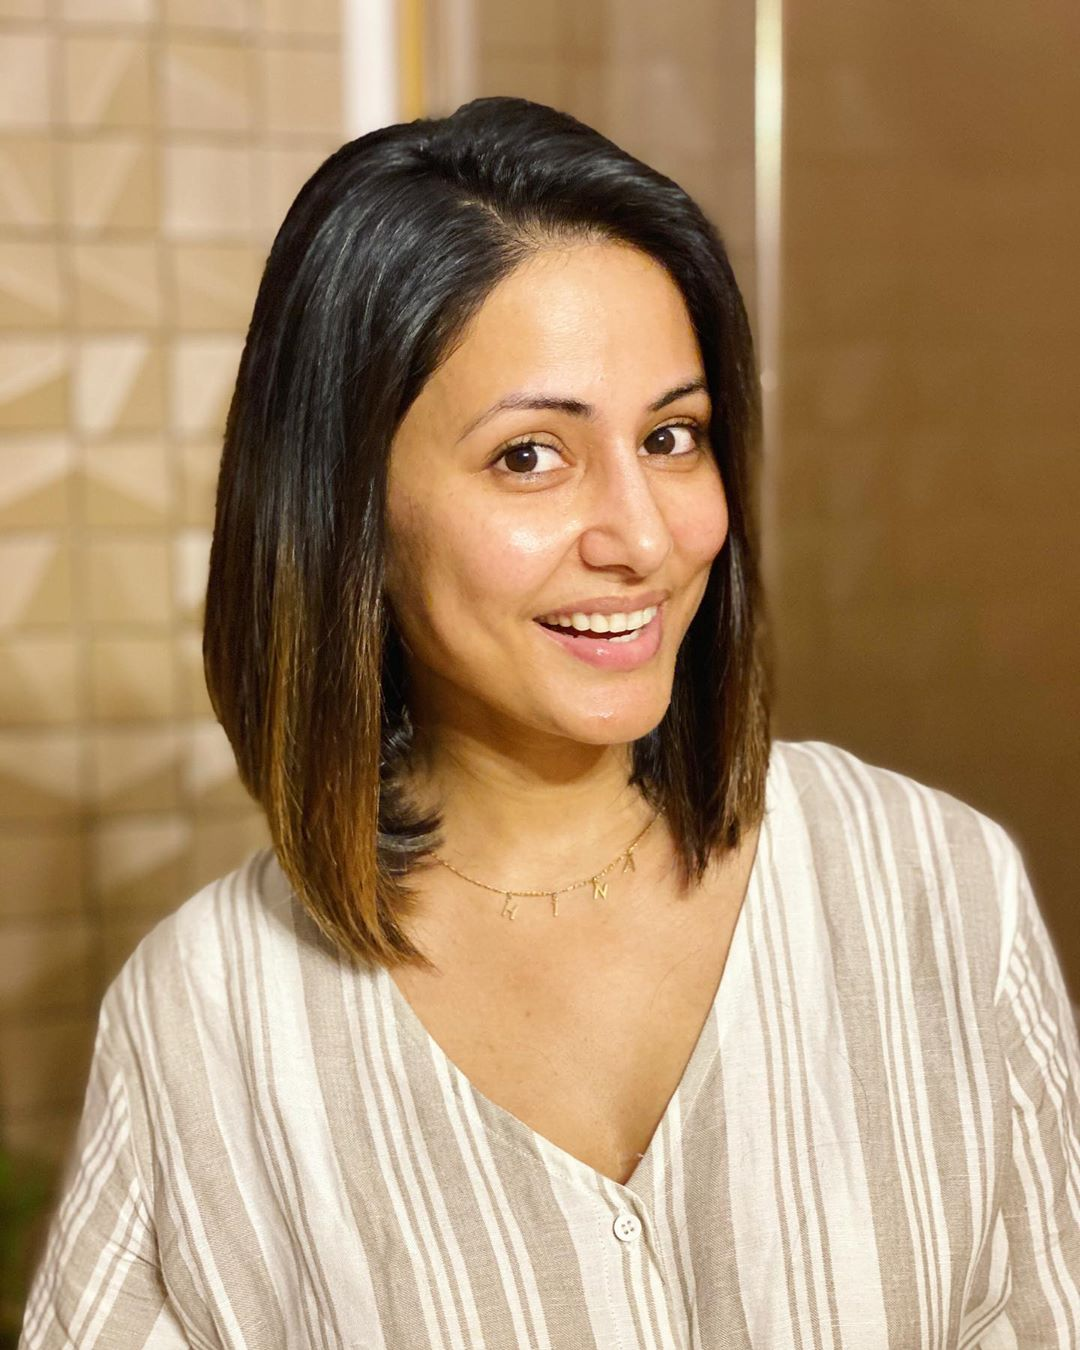 hina-khan-shares-beautiful-pictures-with-new-haircut